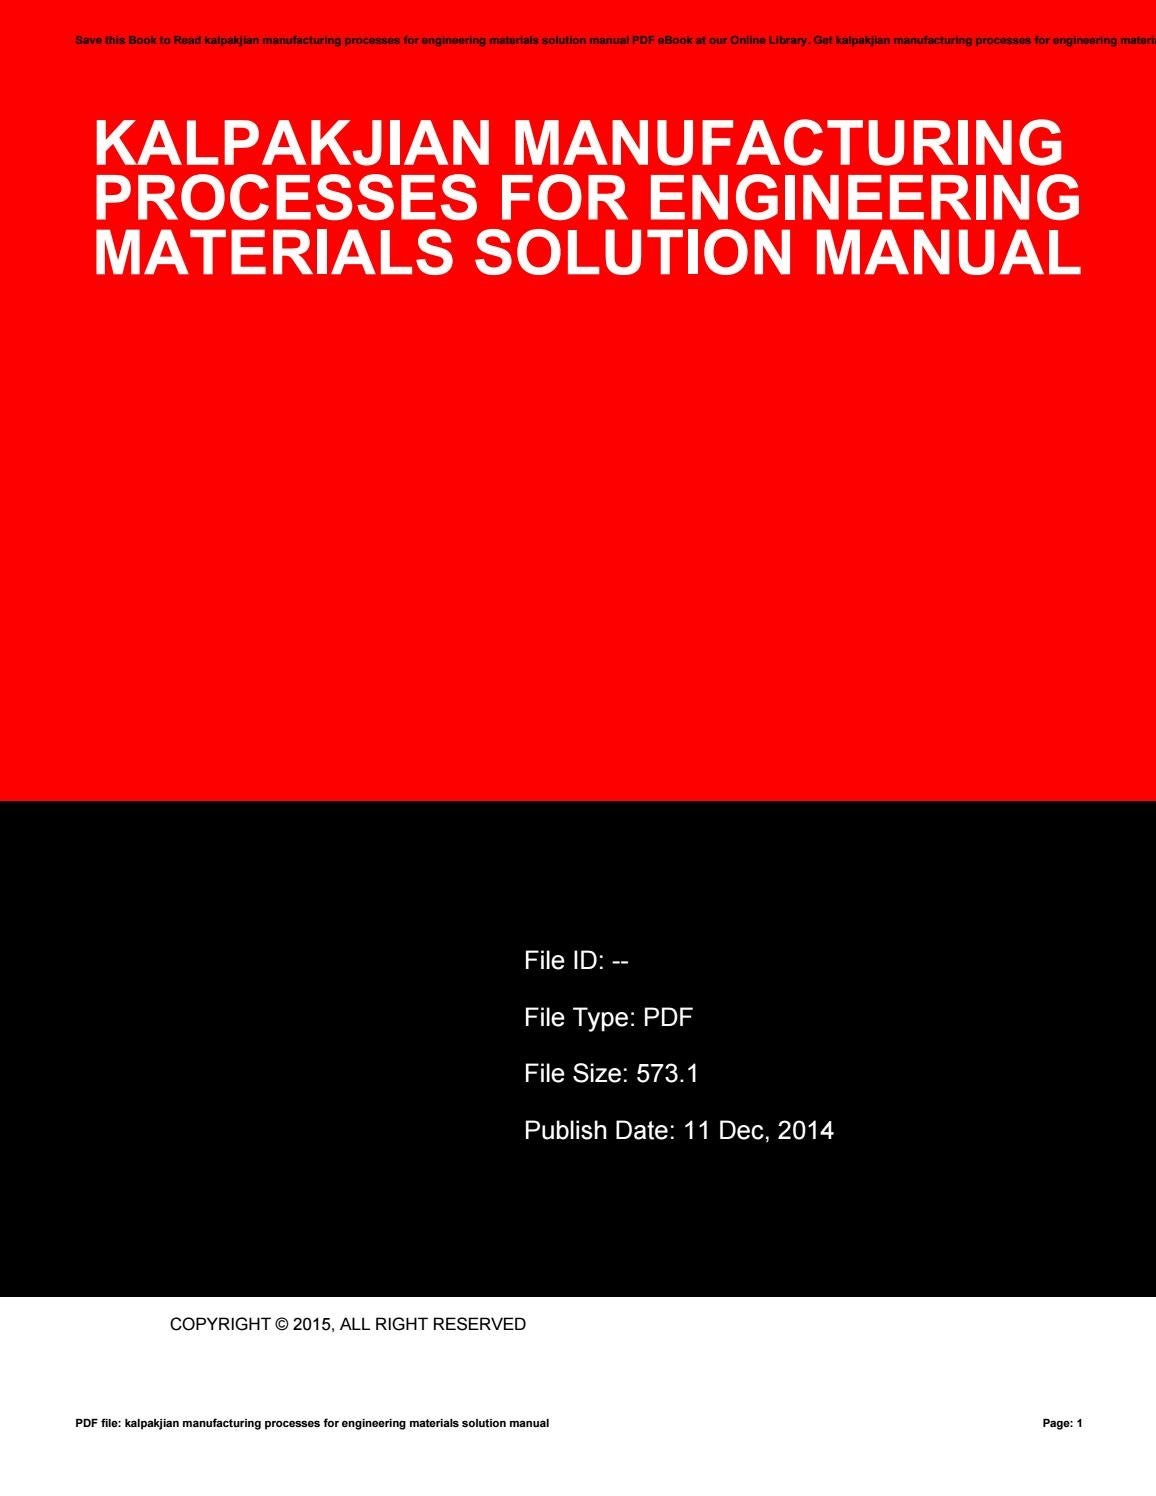 Kalpakjian manufacturing processes for engineering materials solution manual  by nezzart05 - issuu